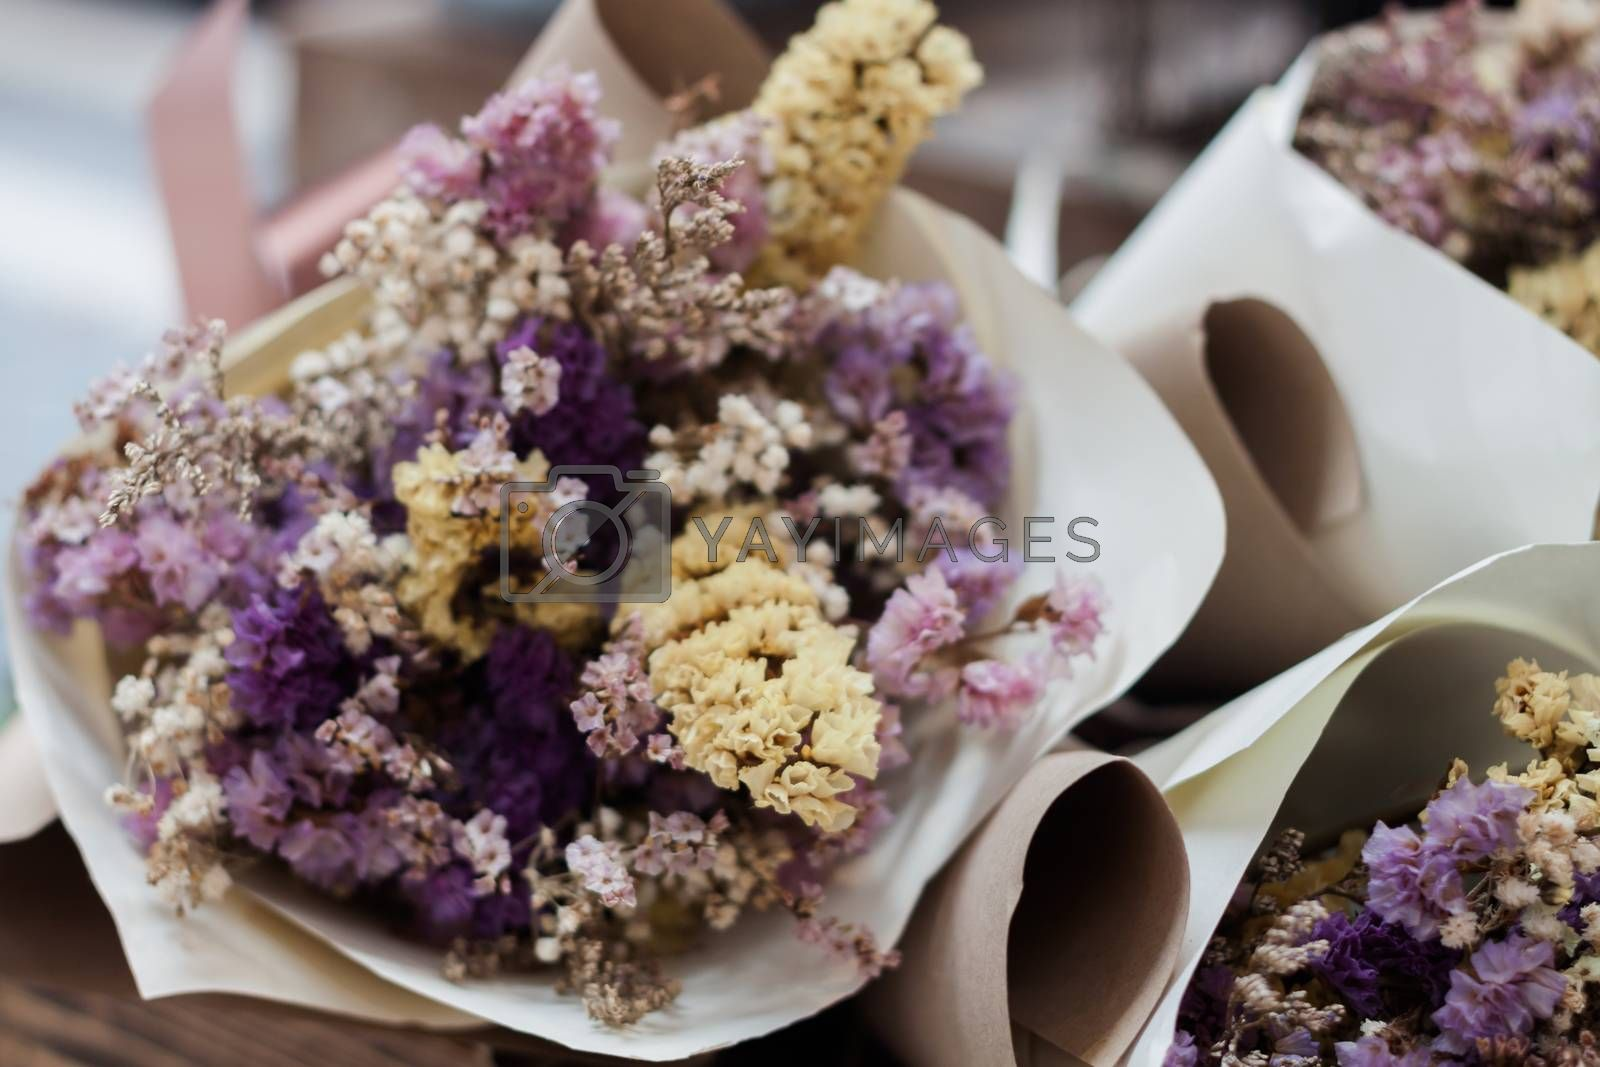 Dried flower bouquet at florist shop, stock photo